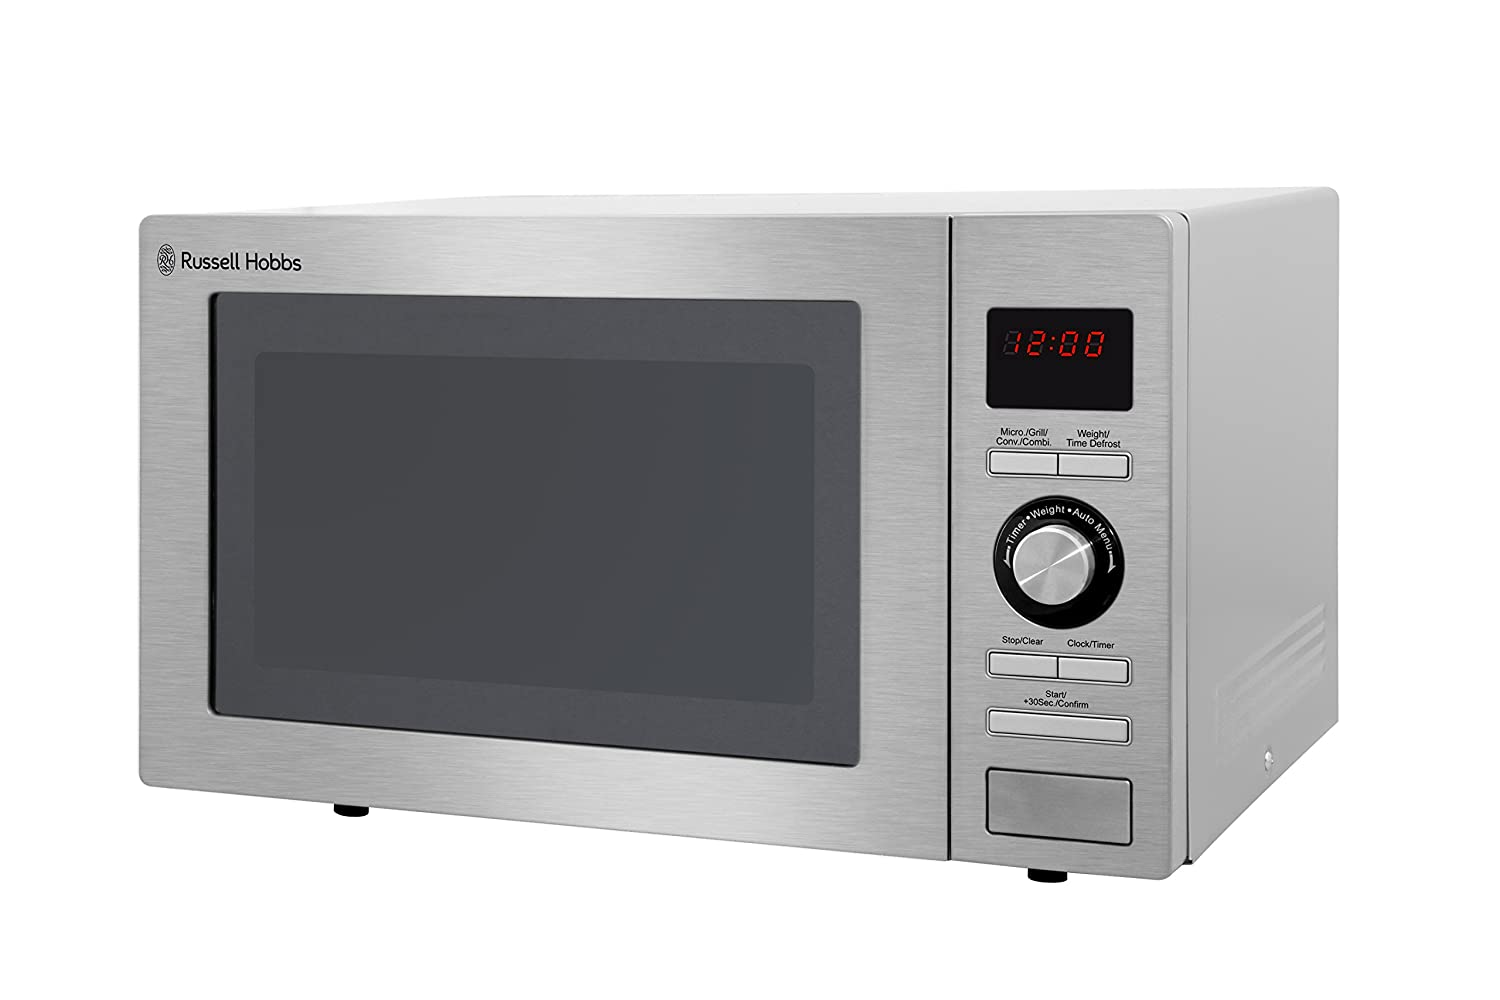 russell hobbs microwave convection oven instructions